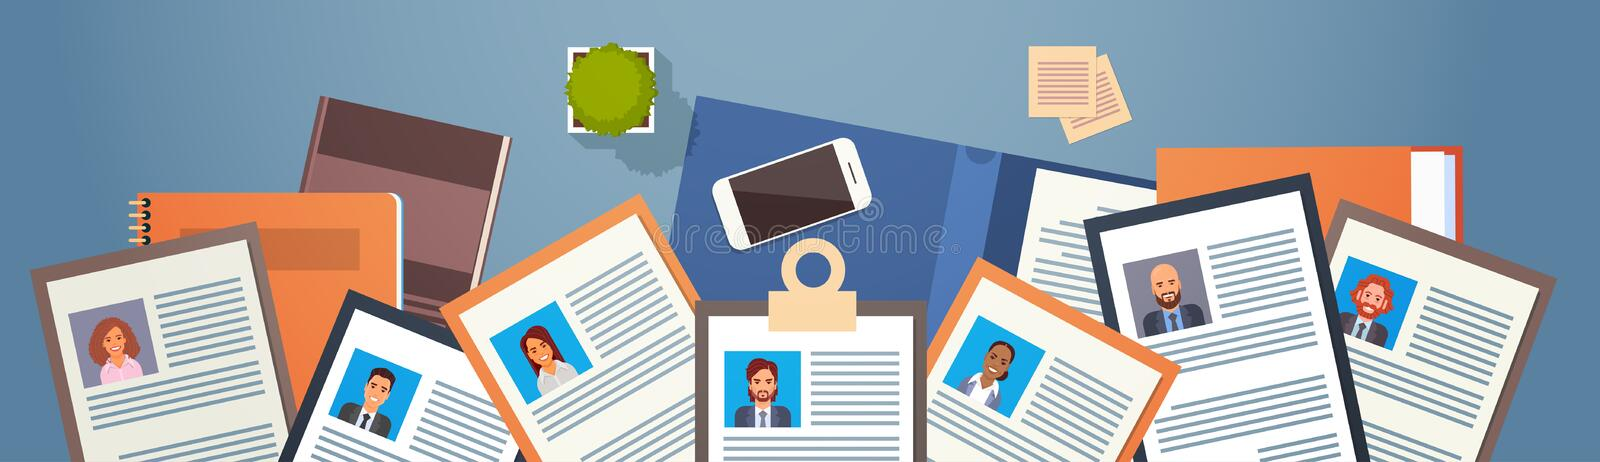 Curriculum Vitae Recruitment Candidate Job Position, CV Profile On Desk Top Angle View Business People to Hire royalty free illustration